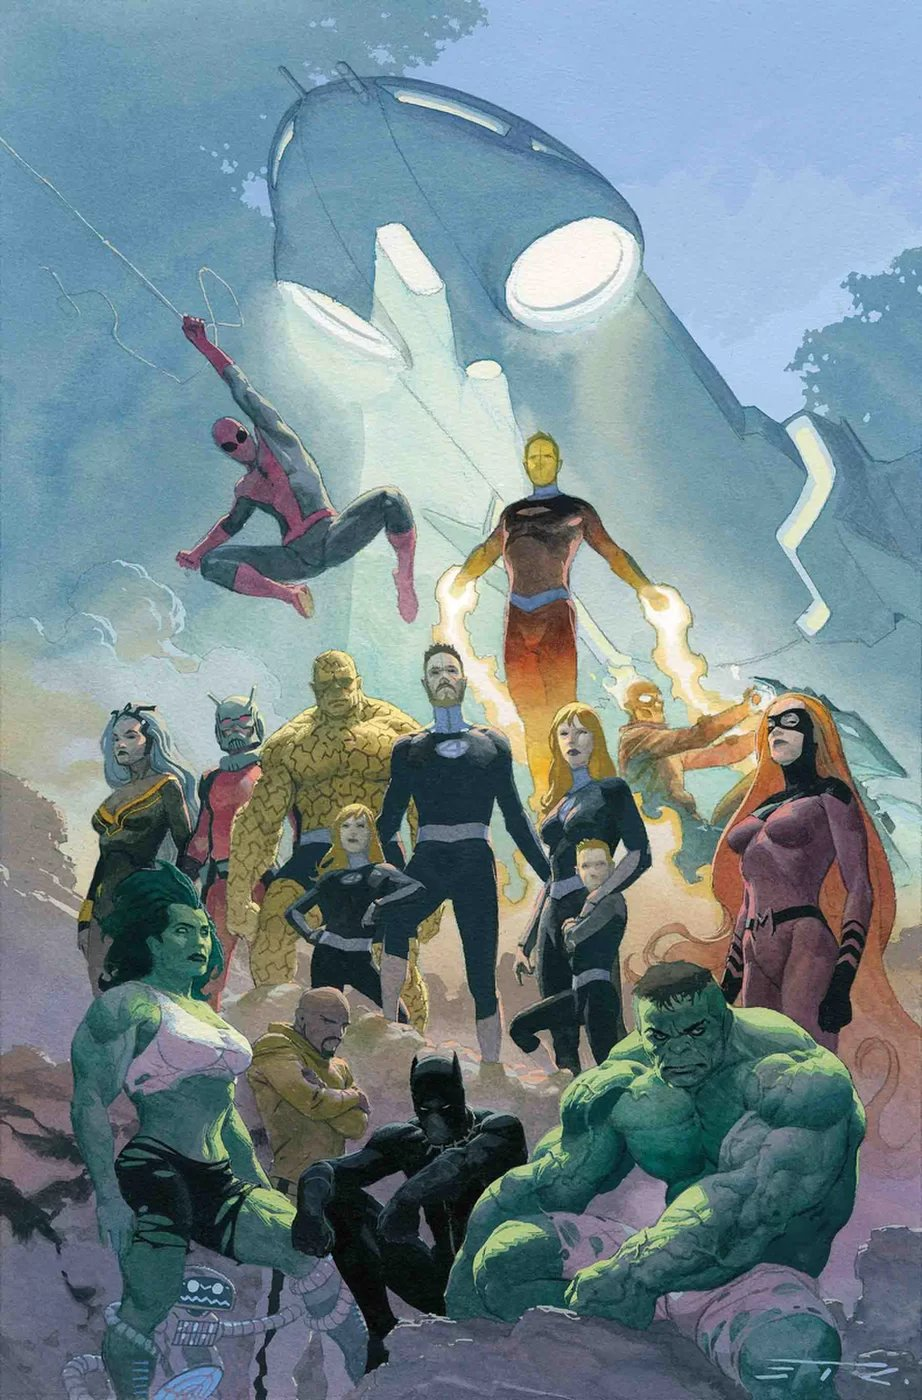 Fantastic Four (Earth-616) | Marvel Database | FANDOM powered by Wikia